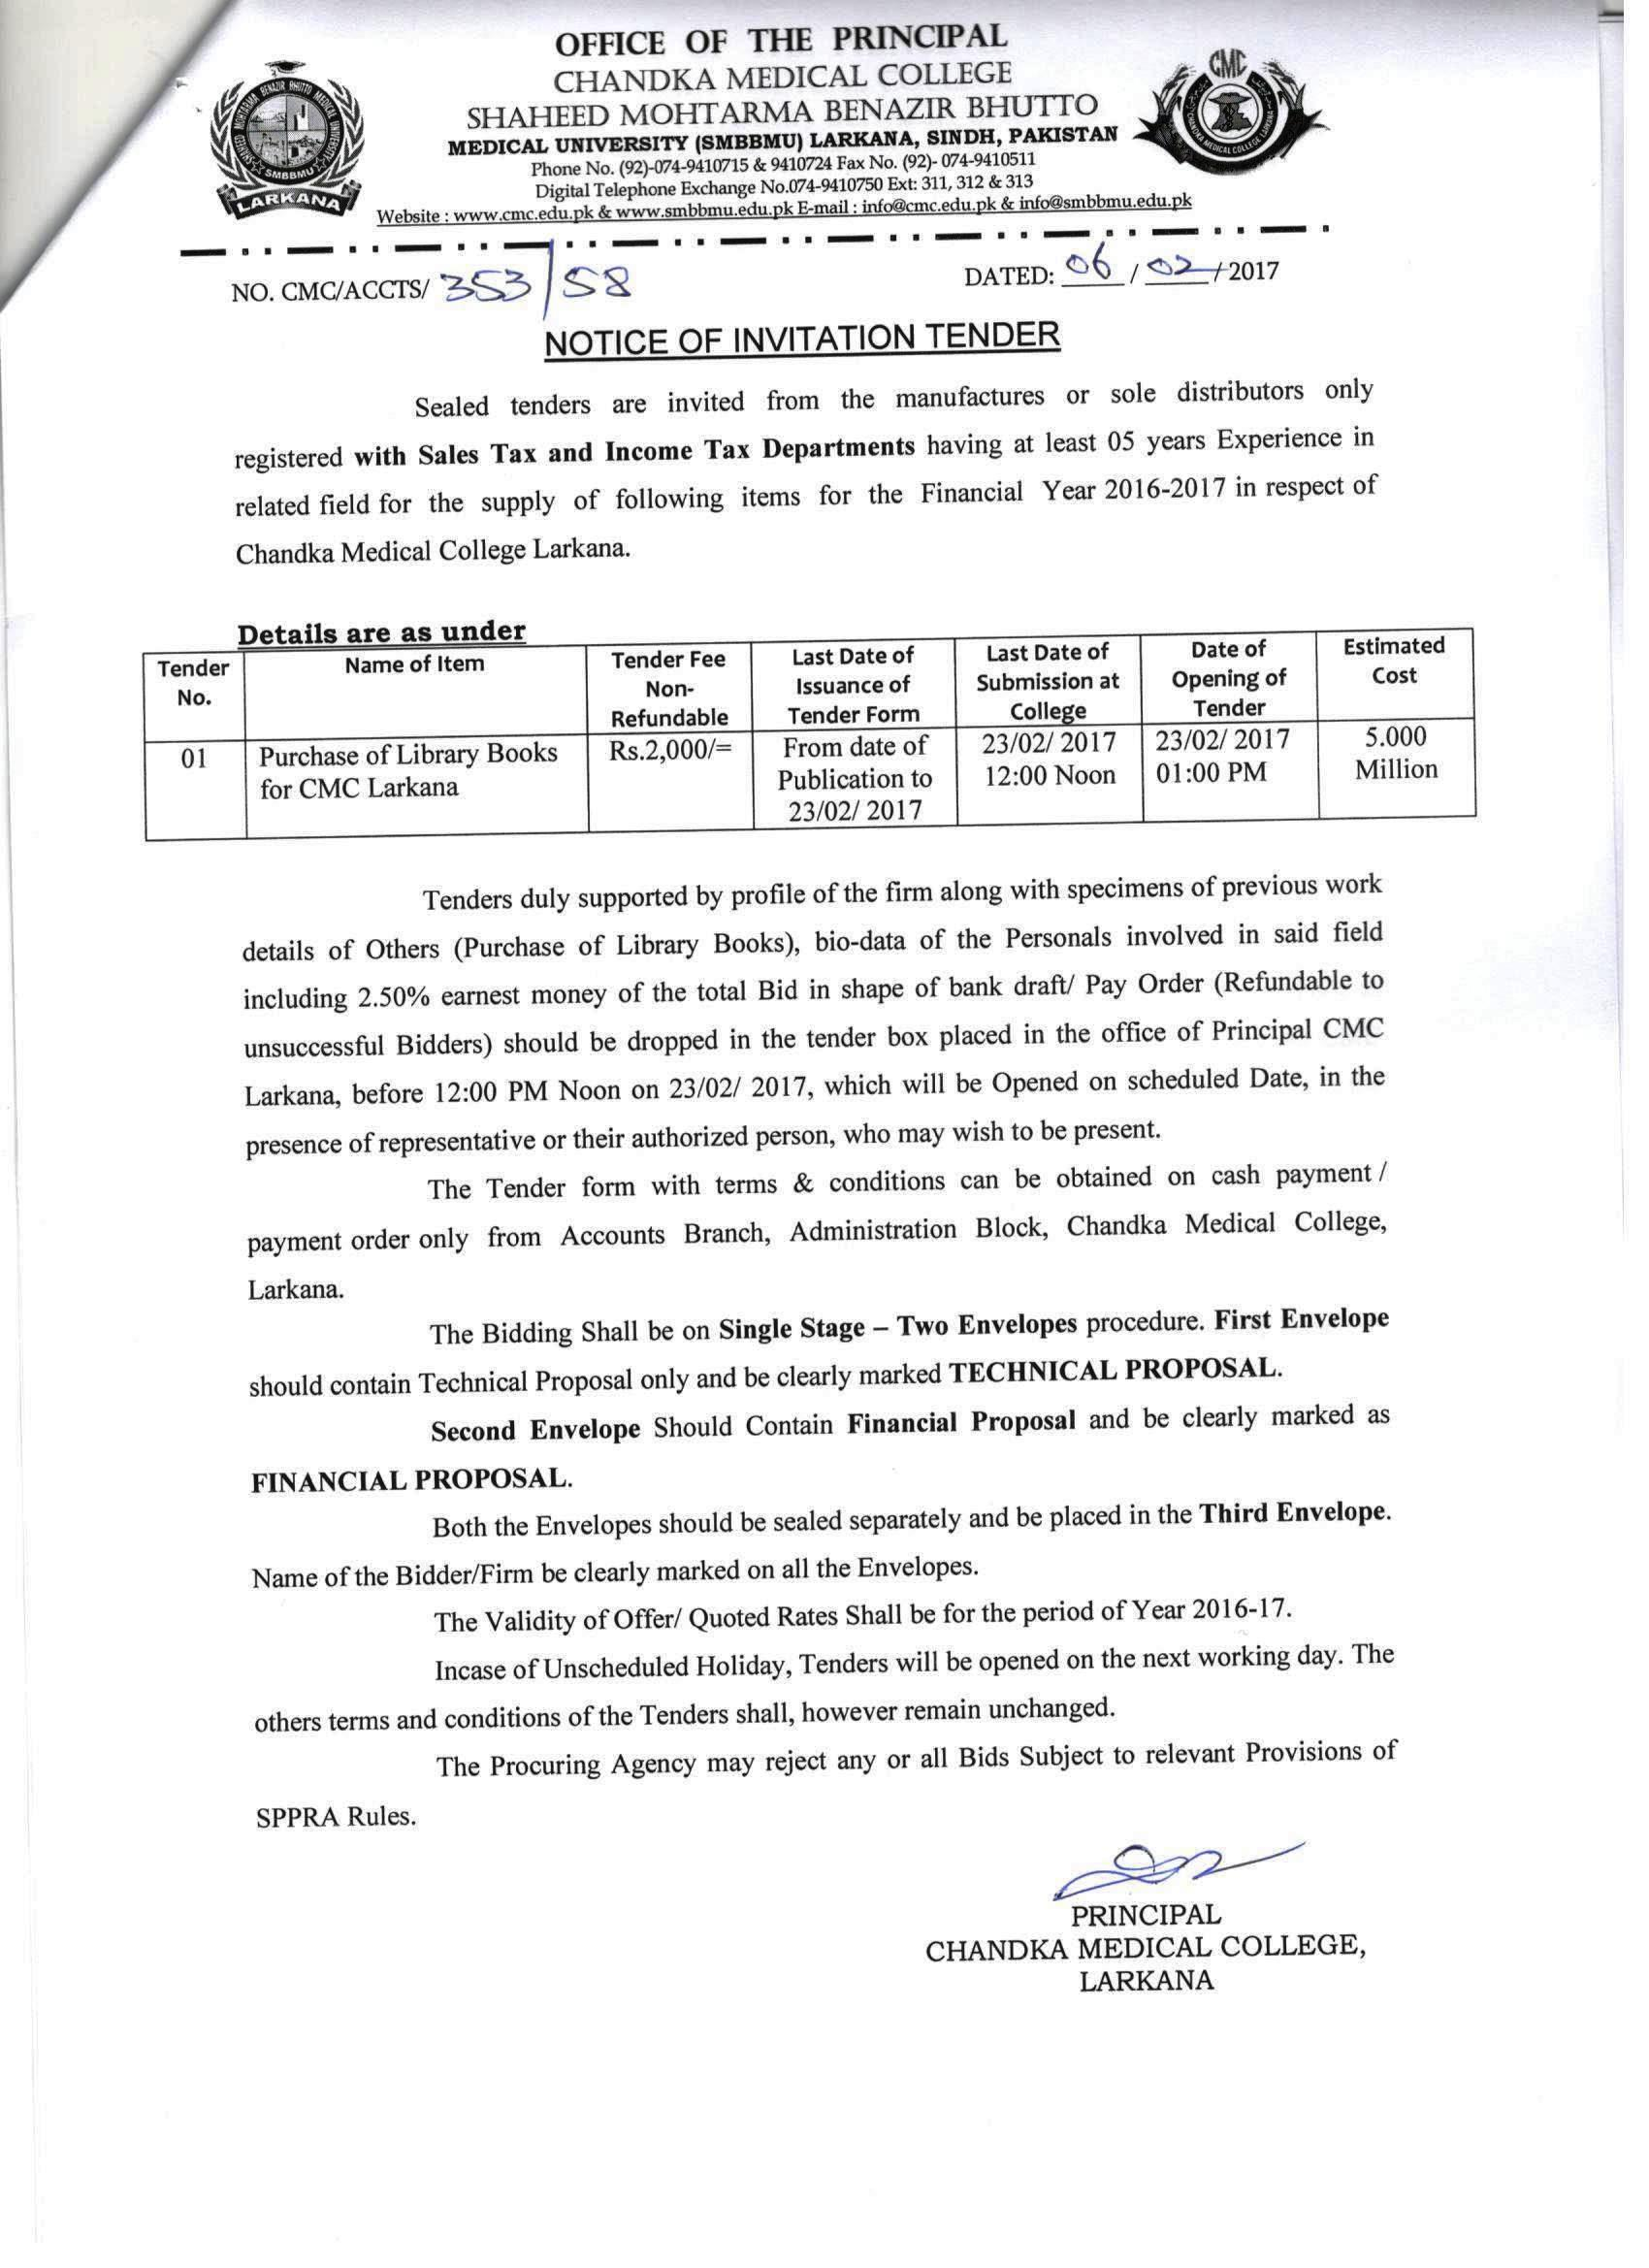 Shaheed mohtarma benazir bhutto medical university notice inviting tender for purchase of library books for cmc larkana stopboris Image collections